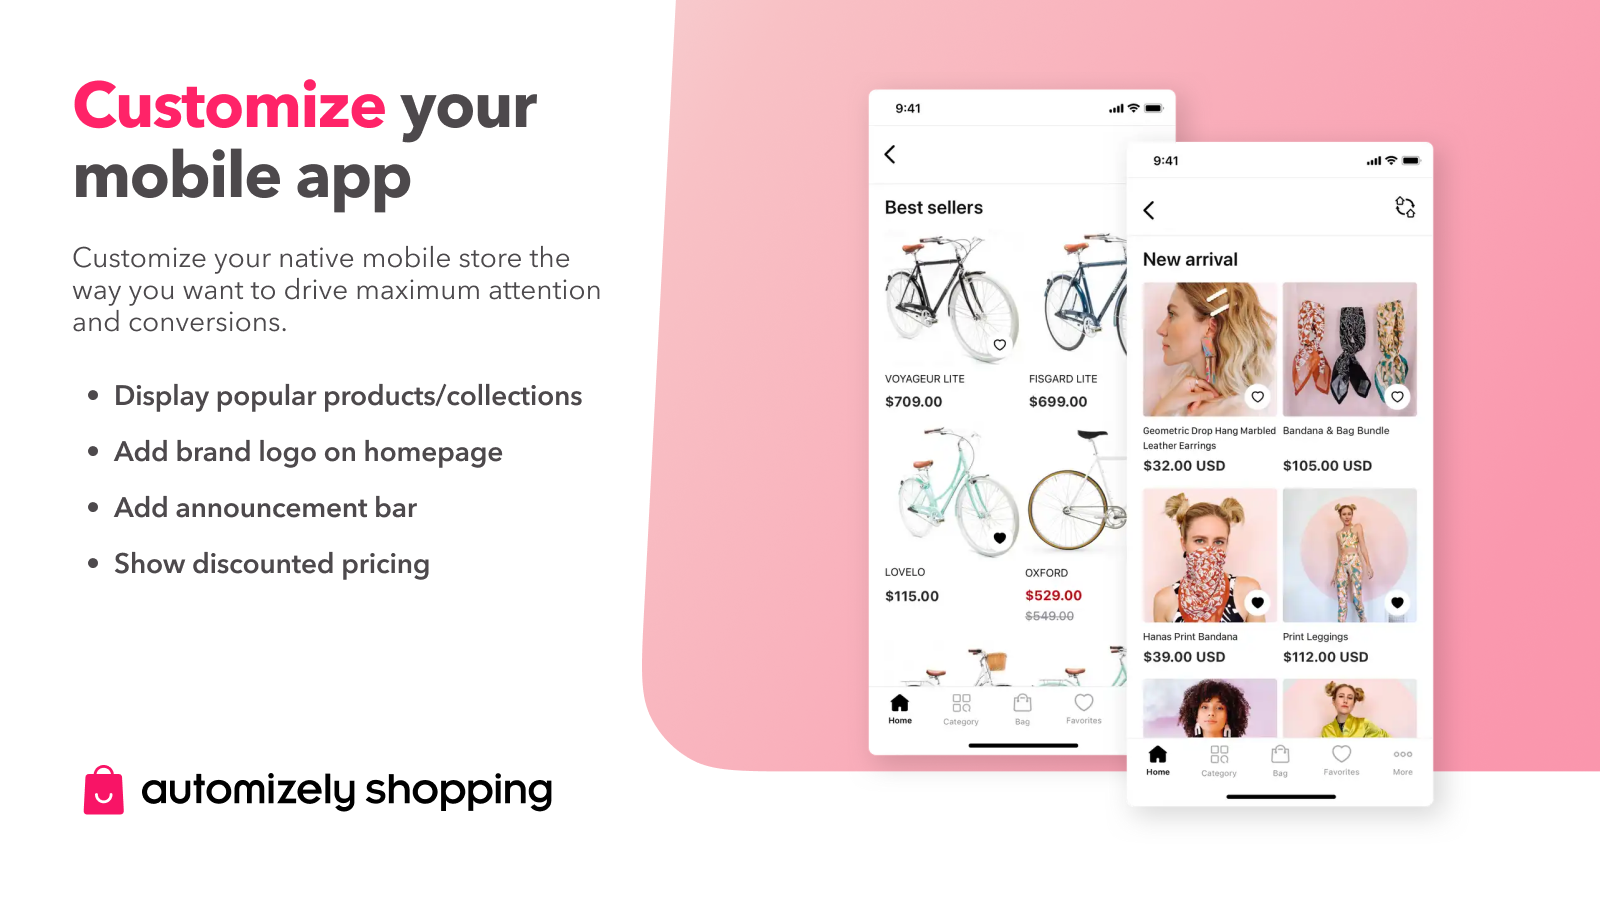 Customize your mobile app to match your brand style.